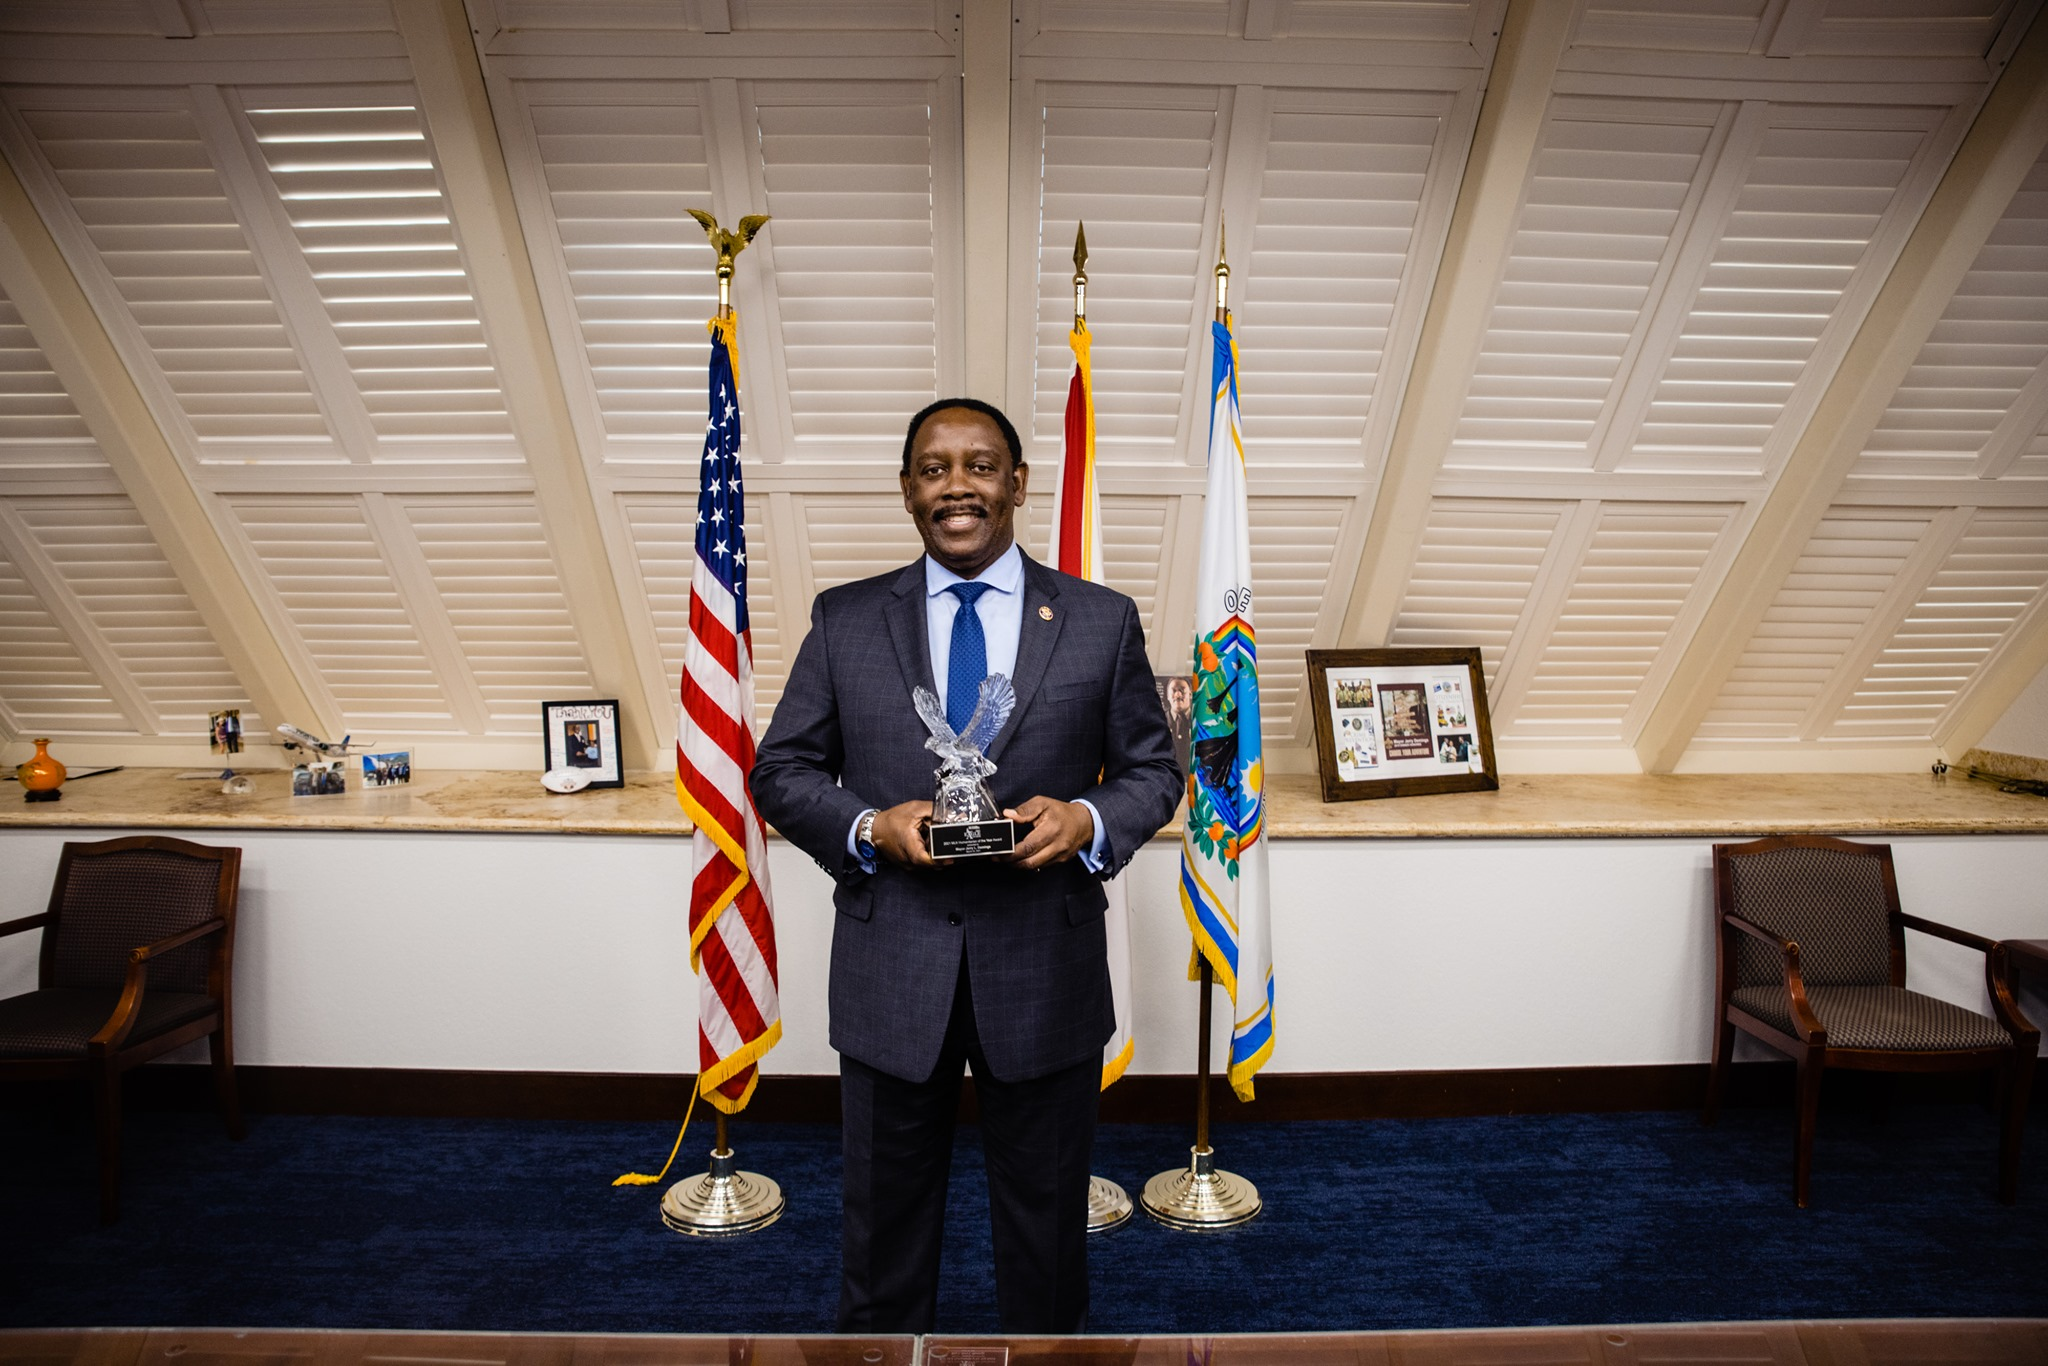 Mayor Demings recipient of the African American Chamber's 2021 MLK Humanitarian of the Year Award